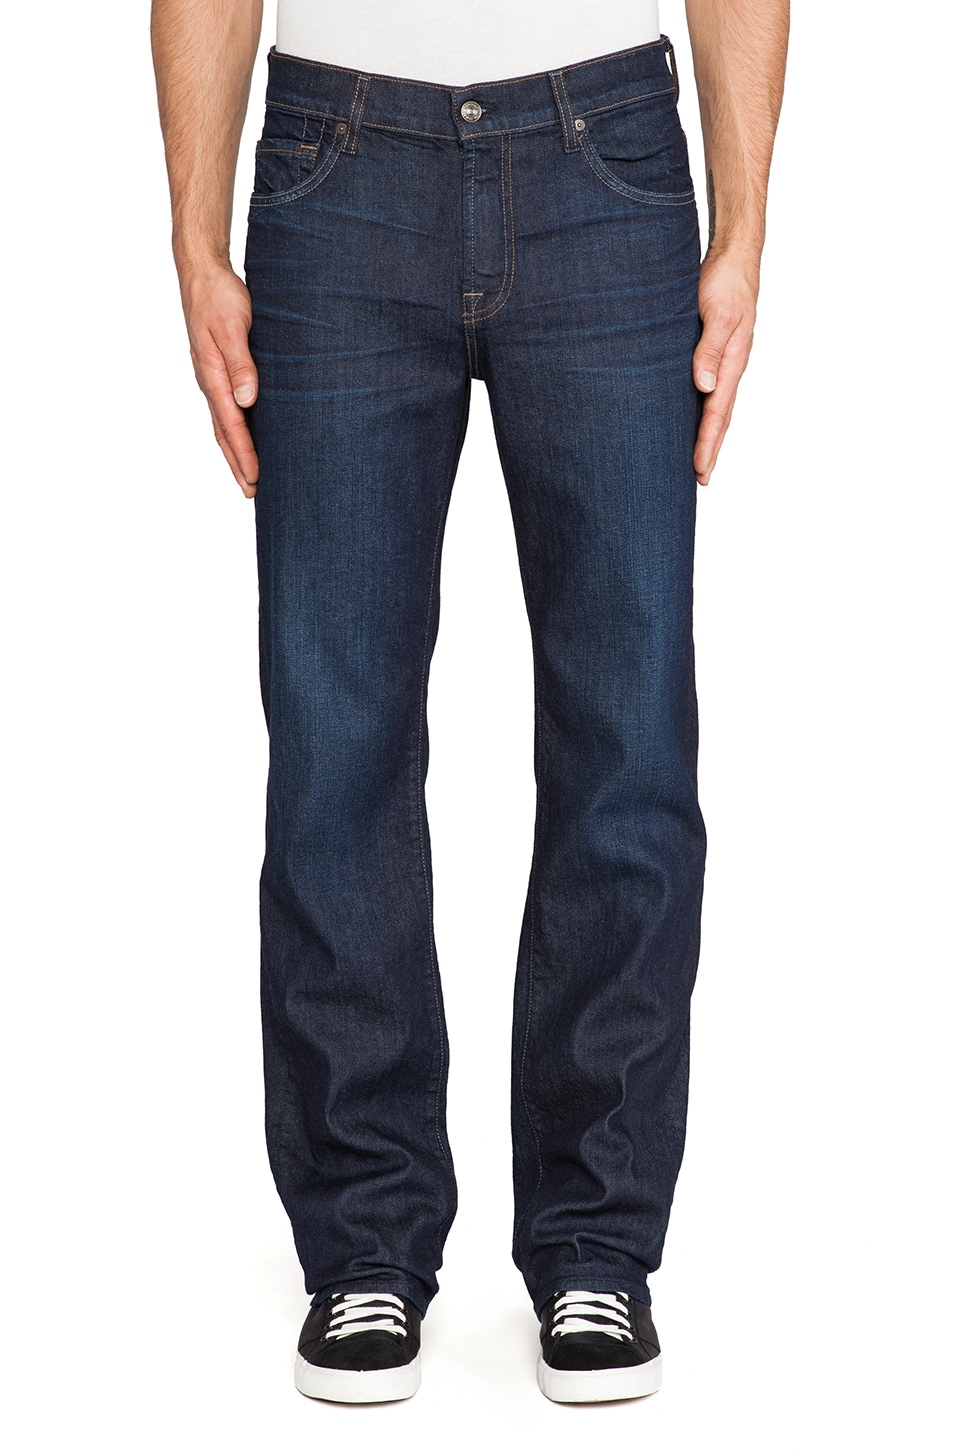 7 For All Mankind Austyn in Crisp Blue